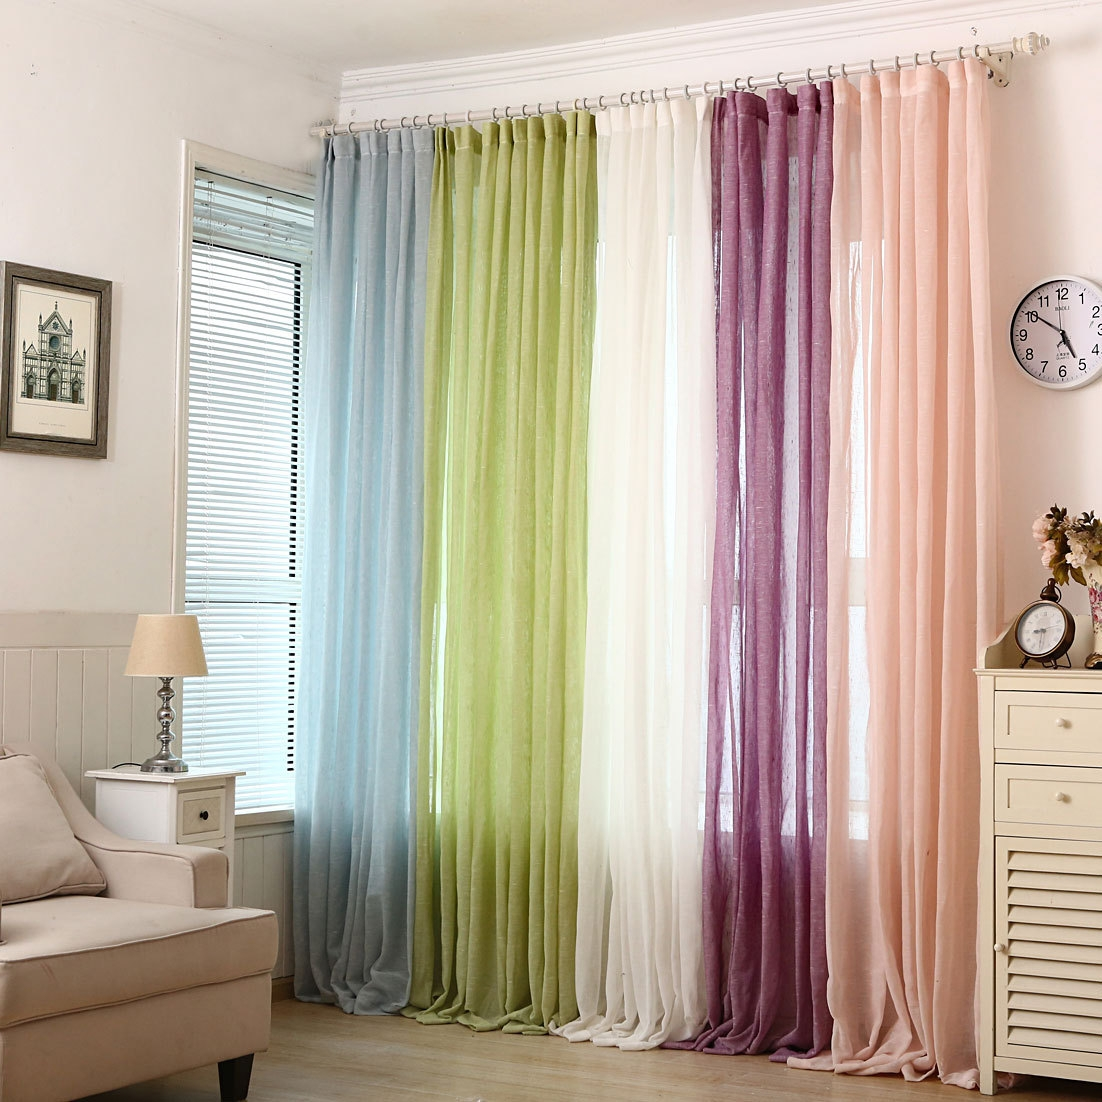 Online Buy Wholesale Linen Gauze Curtains From China Linen Gauze With Regard To Linen Gauze Curtains (View 8 of 15)